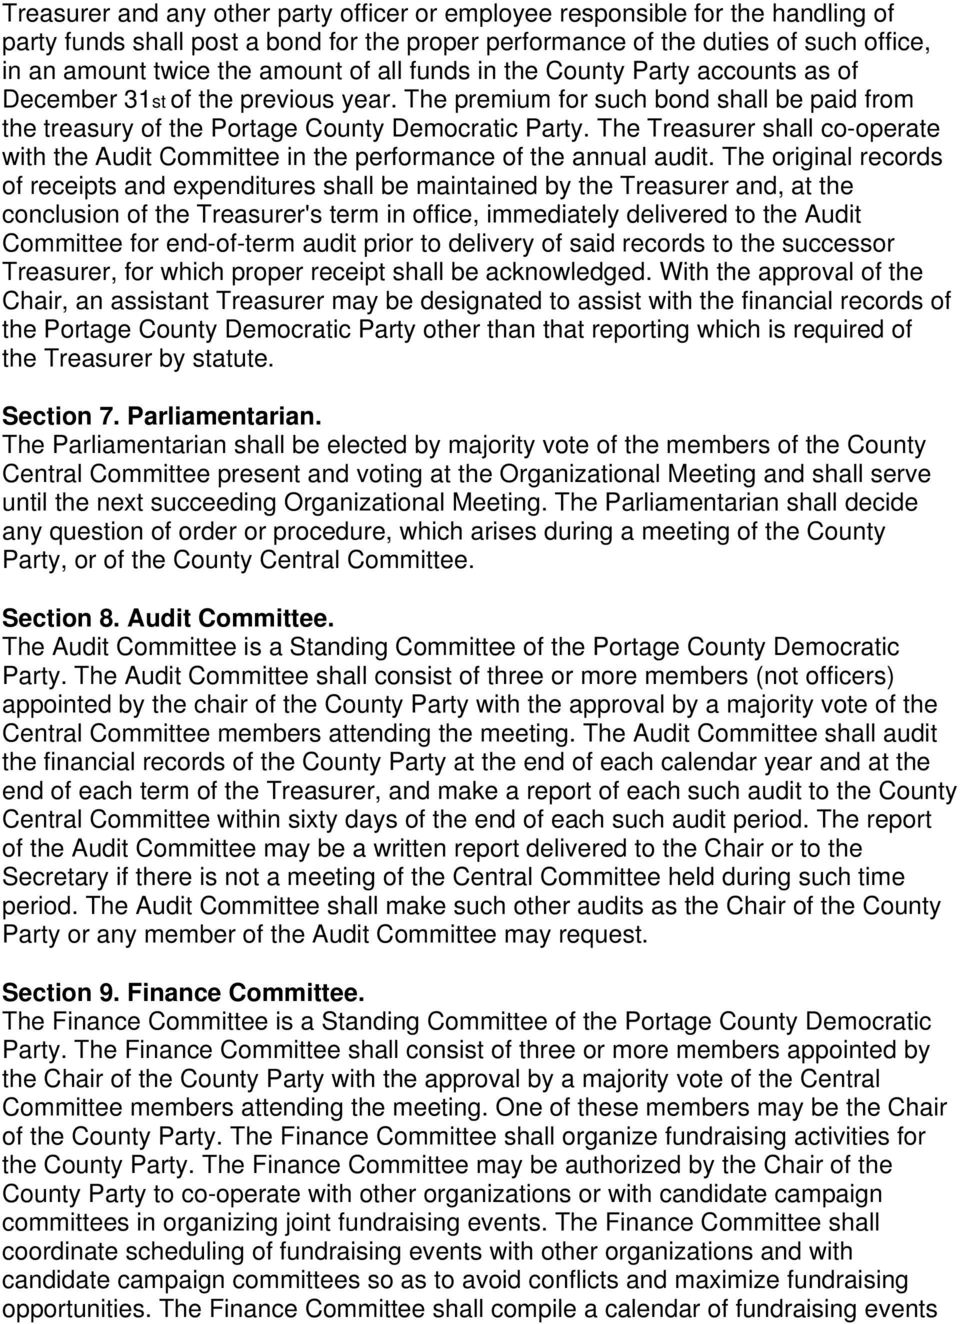 The Treasurer shall co-operate with the Audit Committee in the performance of the annual audit.